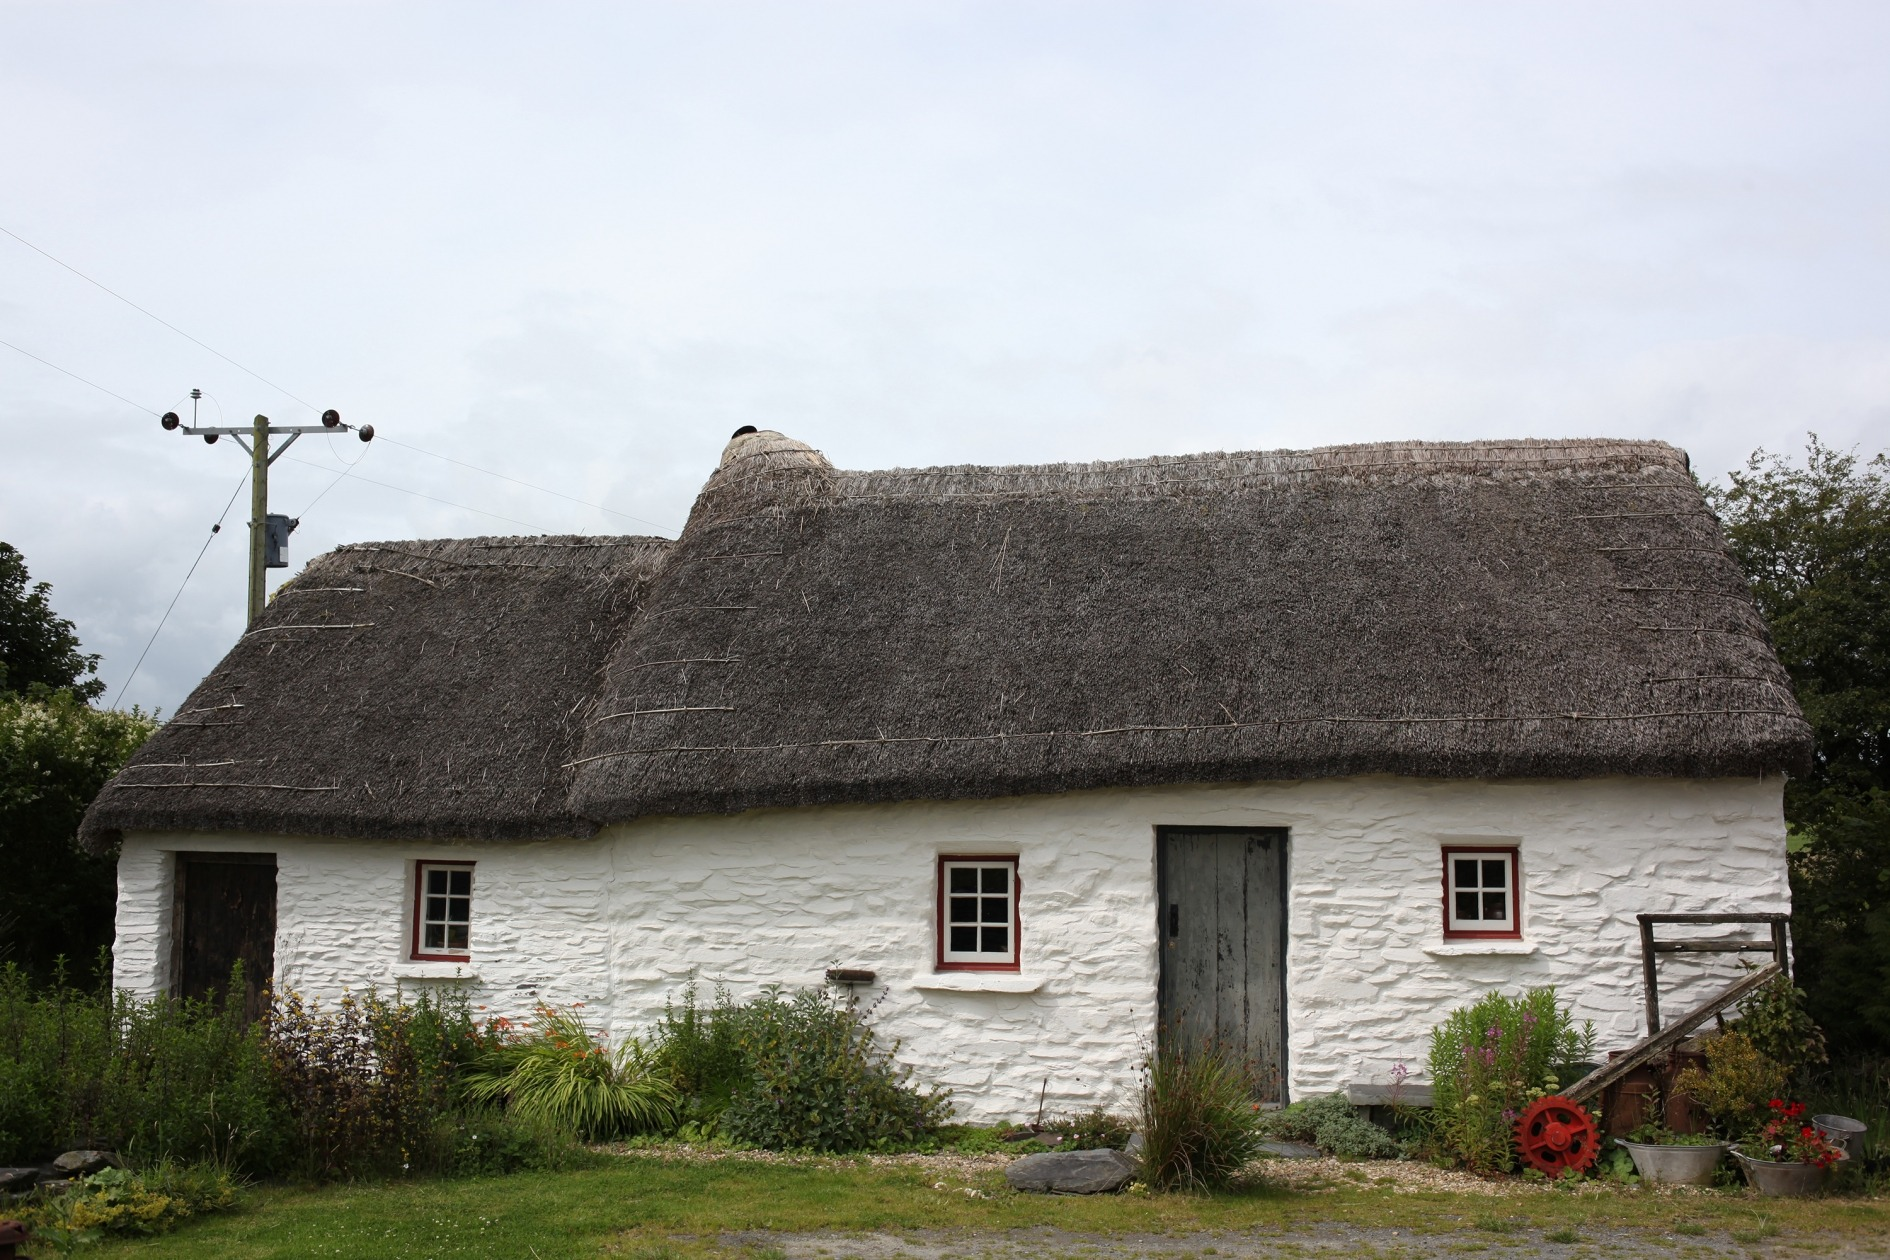 A traditional white cottage in Wales